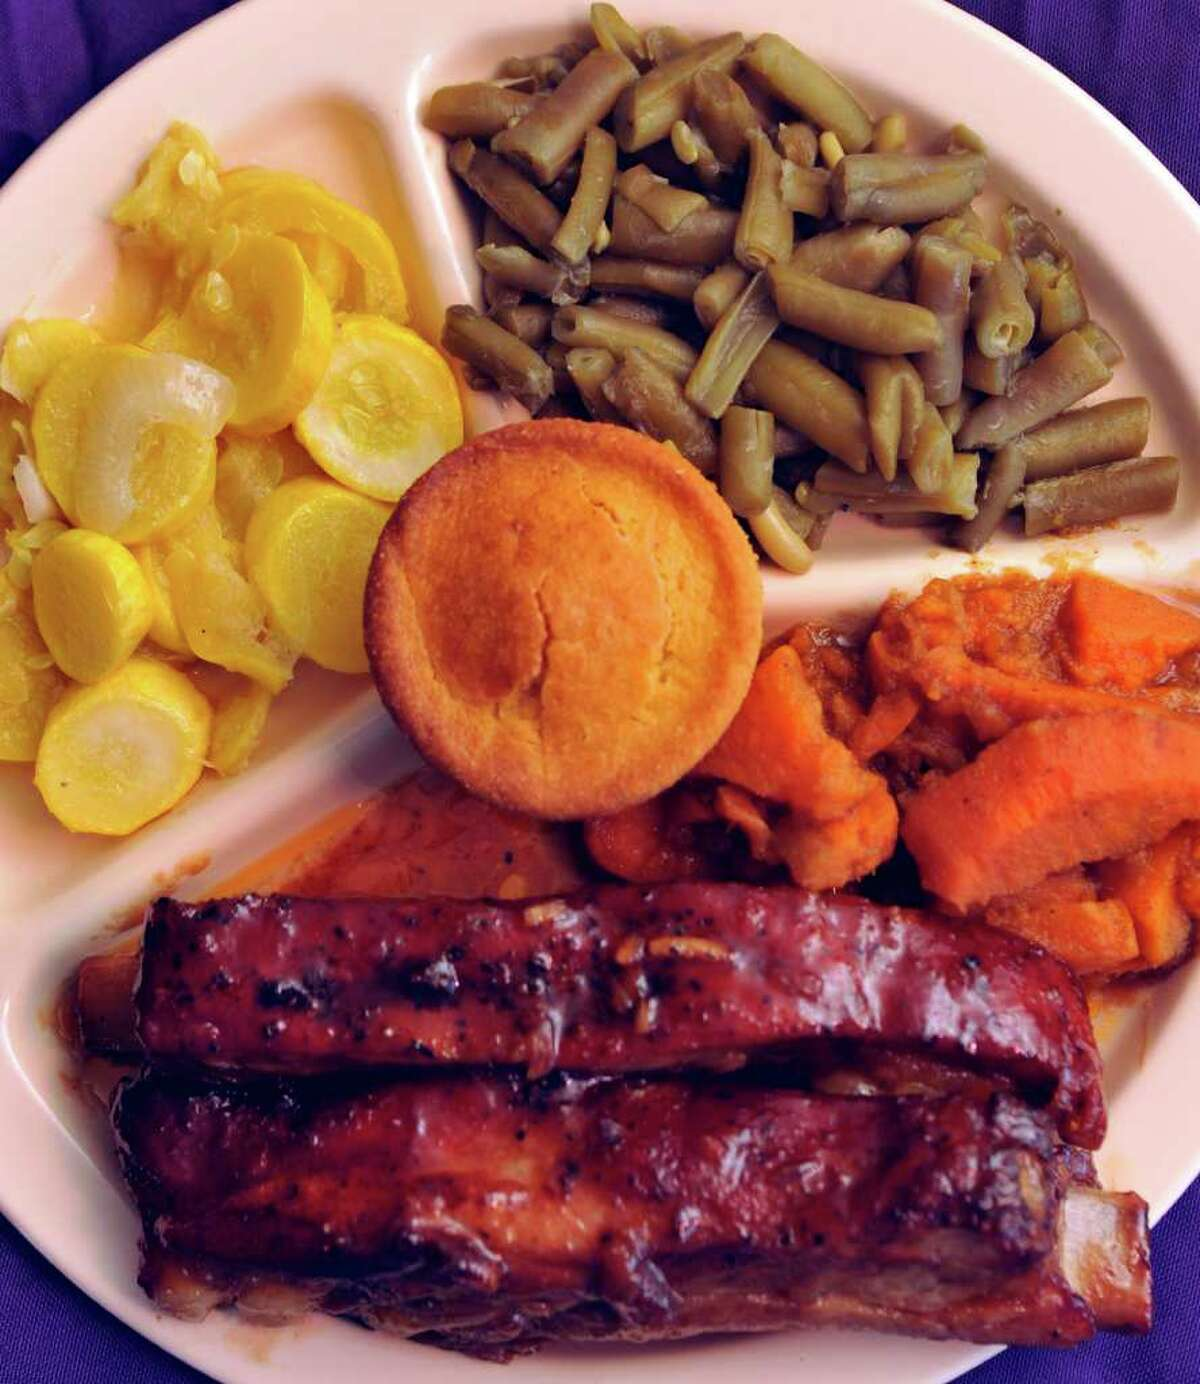 Barbecued ribs with sweet potatoes, green beans, squash and corn bread is one of many combinations from the line at Mr. & Ms. G's Home Cooking.